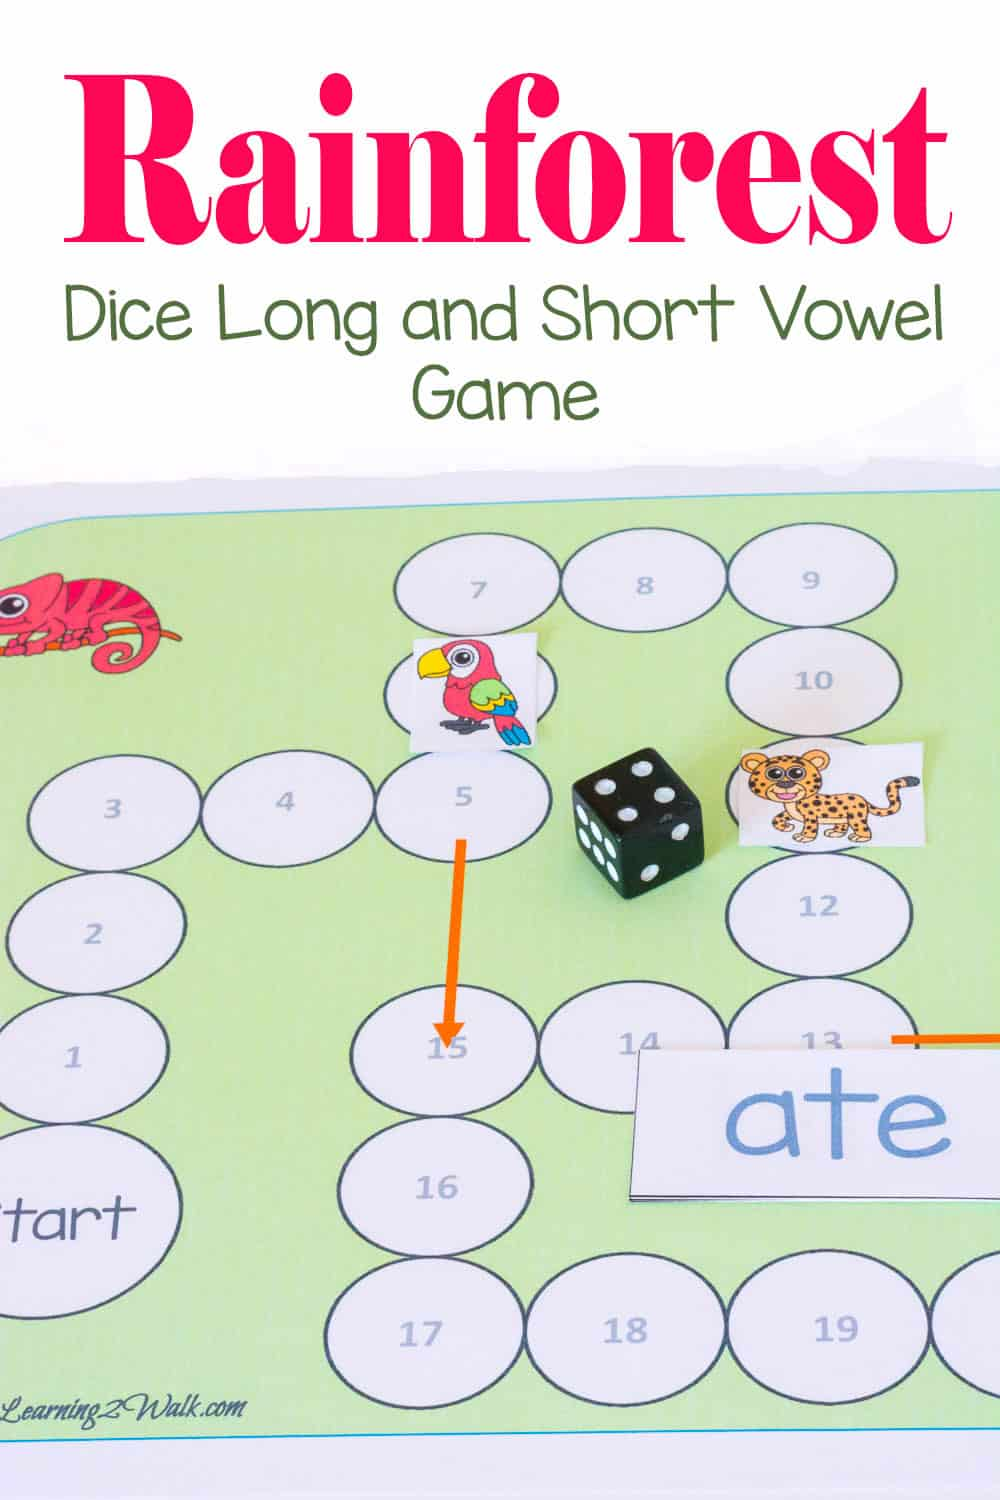 Rainforest Dice Long and Short Vowel Reading Game